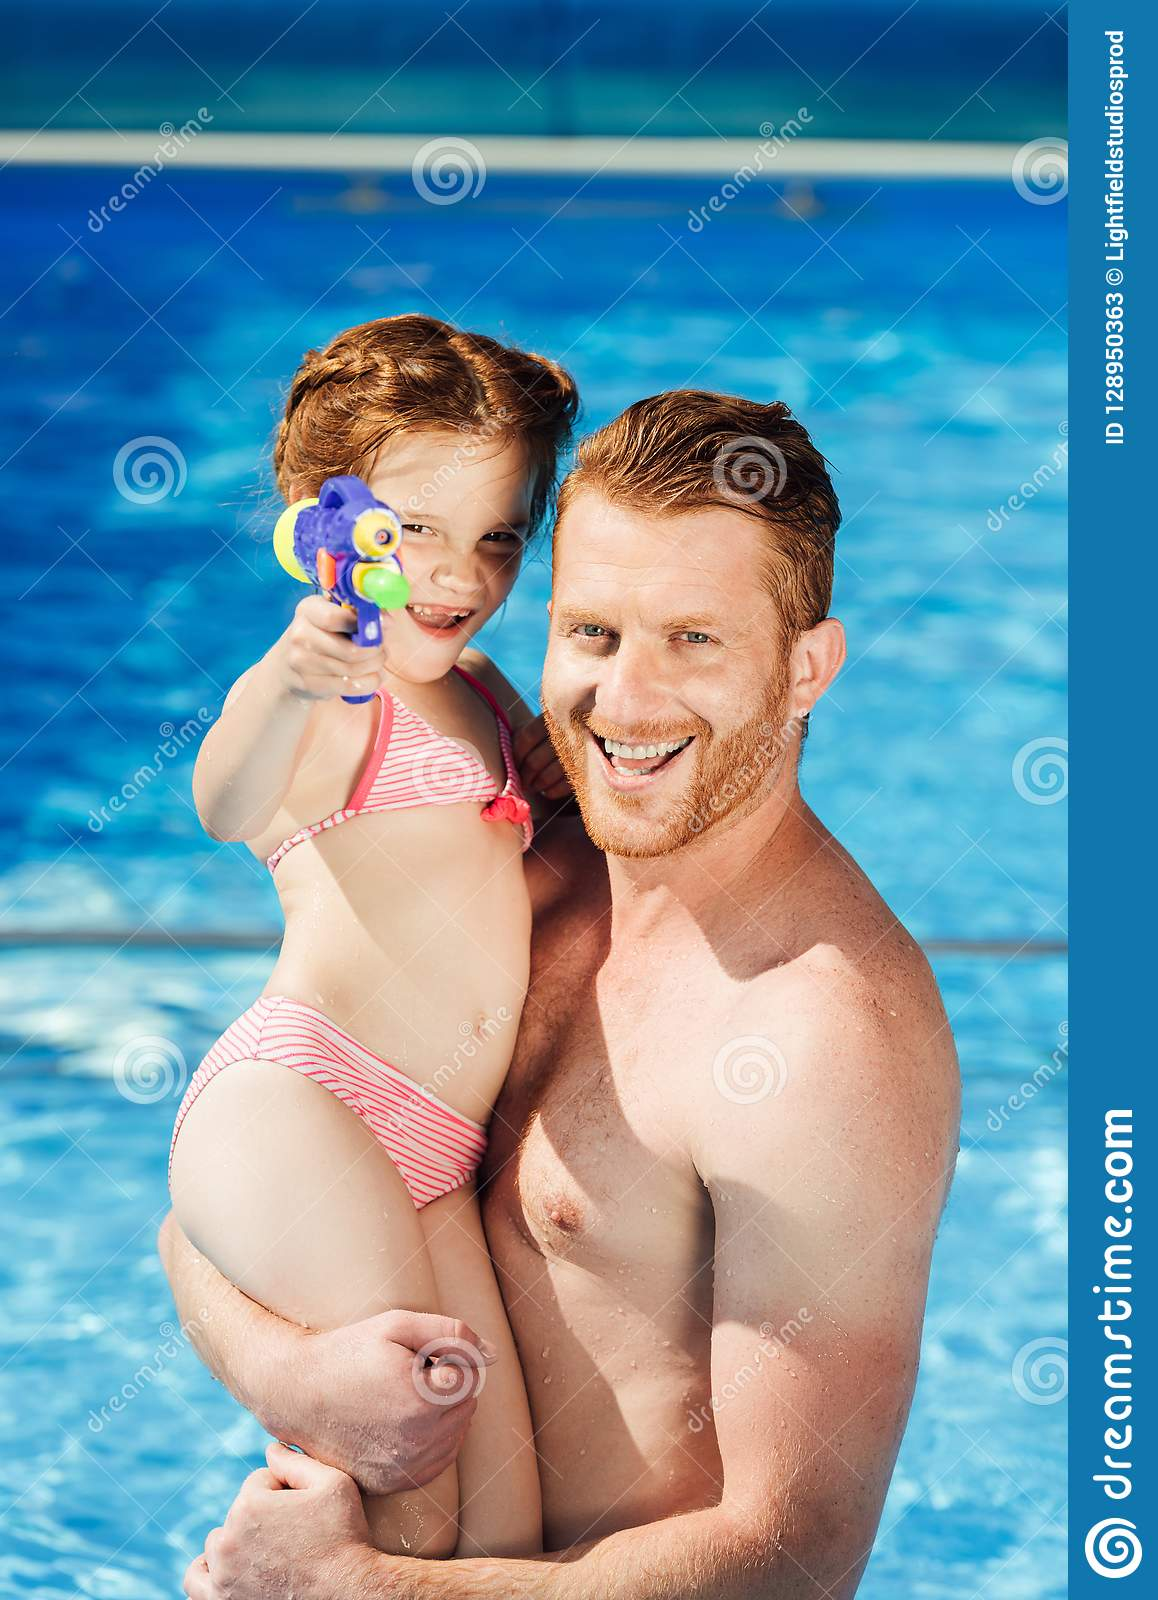 Father daughter nude photo